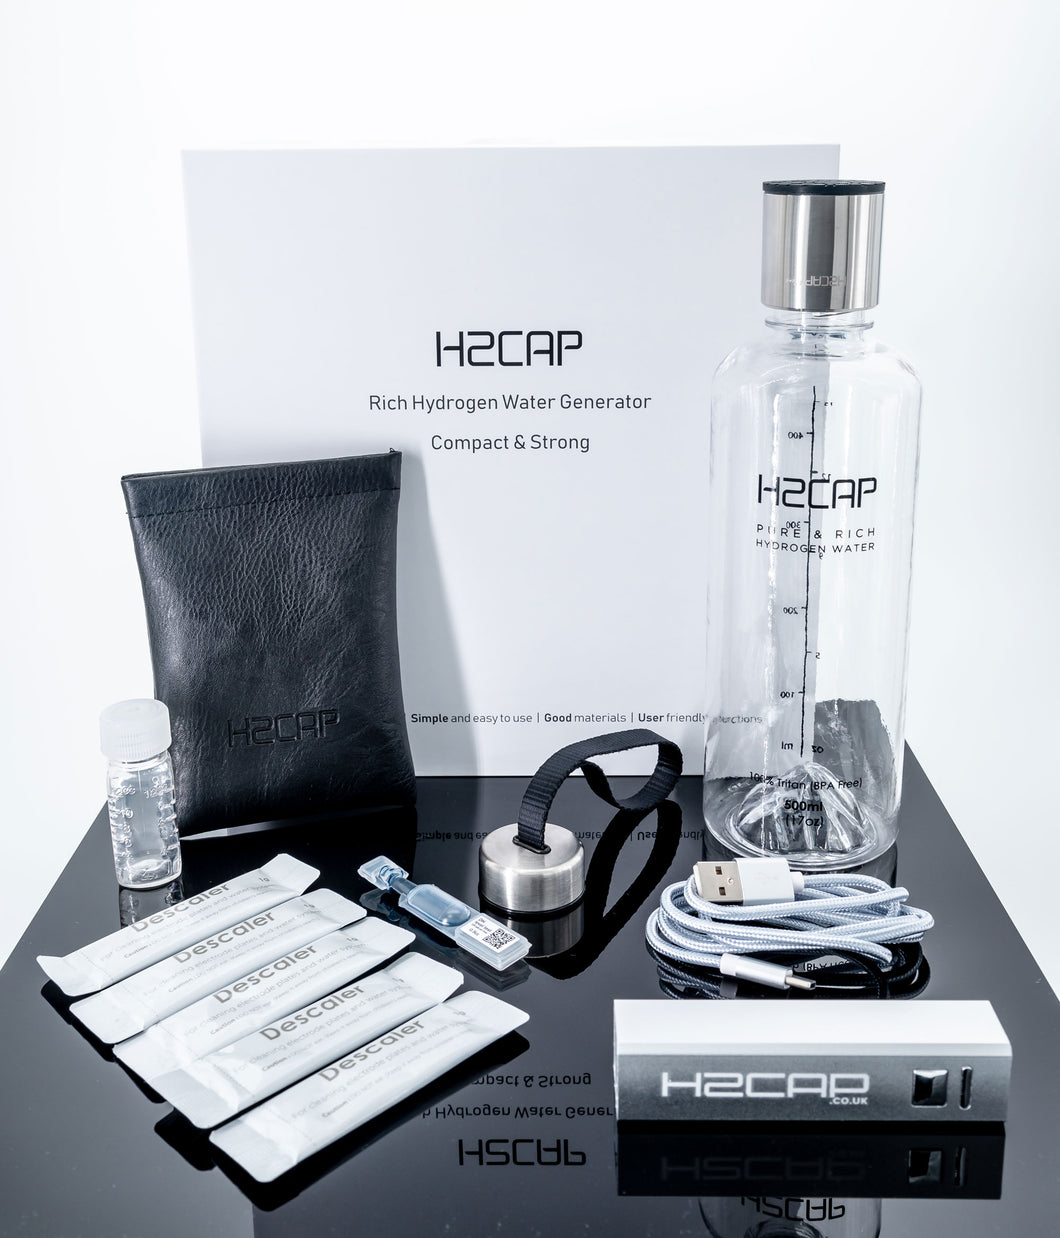 H2cap with accessories and presentation box